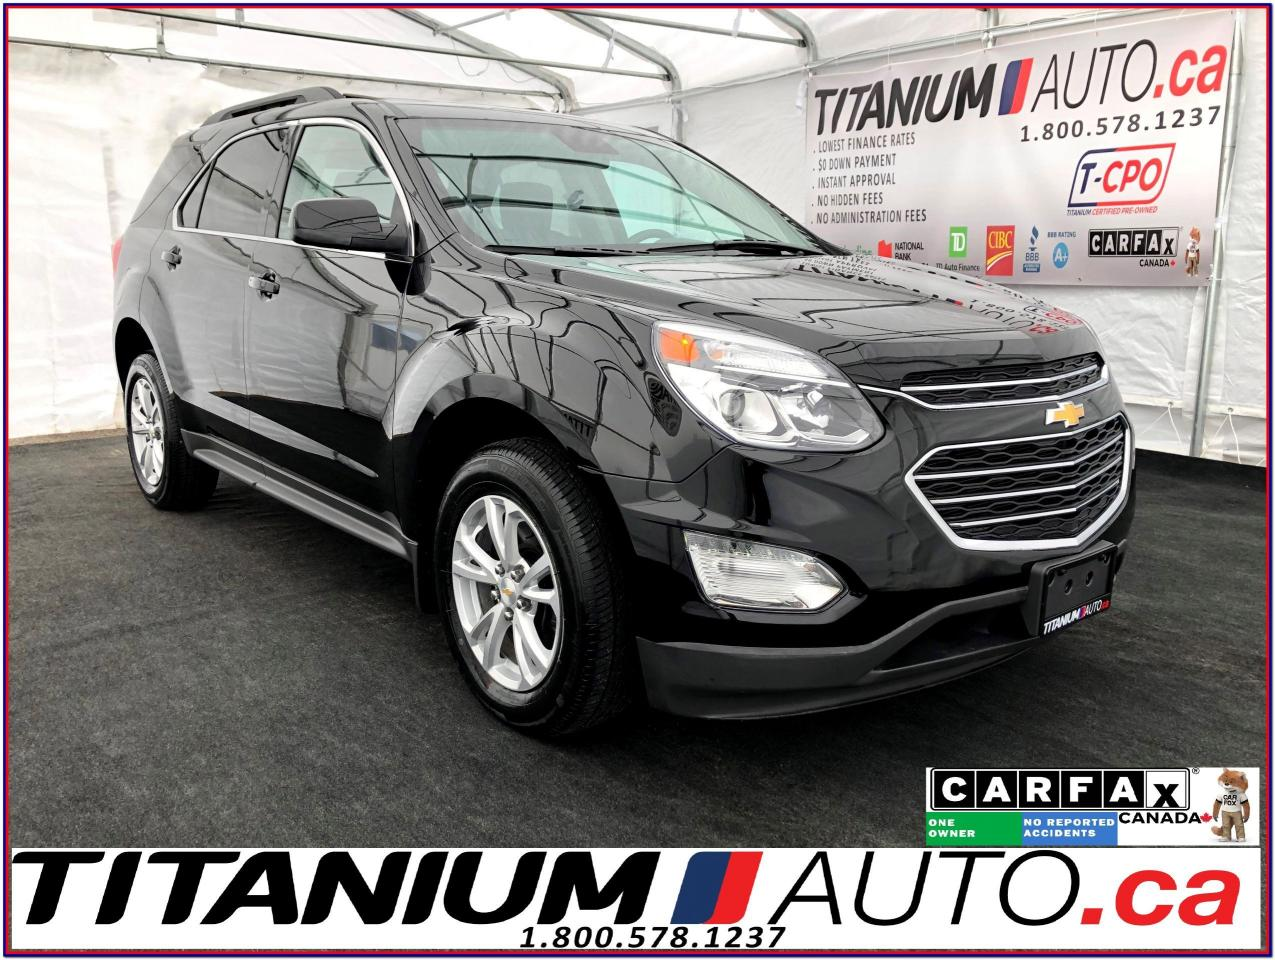 small resolution of  img src https images carpages ca inventory 3313855 99657788 w 640 h 480 q 75 s a086344cd2166aba9716234a324638c3 alt 2017 chevrolet equinox